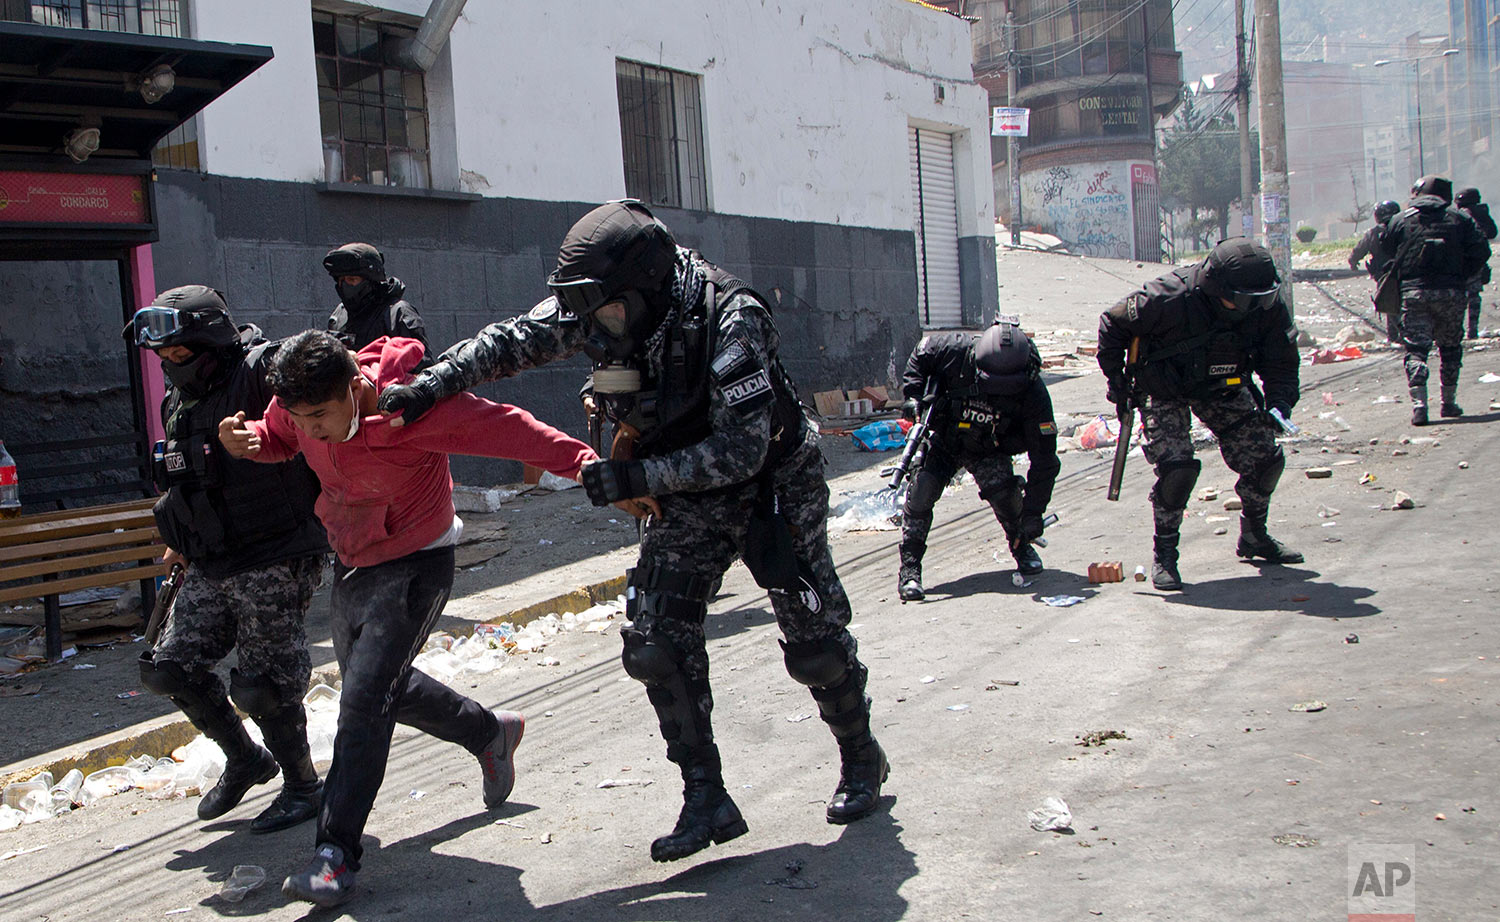 Police detain an anti-government coca farmer outside the coca market in La Paz, Bolivia, March 22, 2018. Anti-government coca farmers were again dispersed by police as they continued to try to take over the coca market by force, after losing access to it last week when pro-government coca growers, forced them out. (AP Photo/Juan Karita)